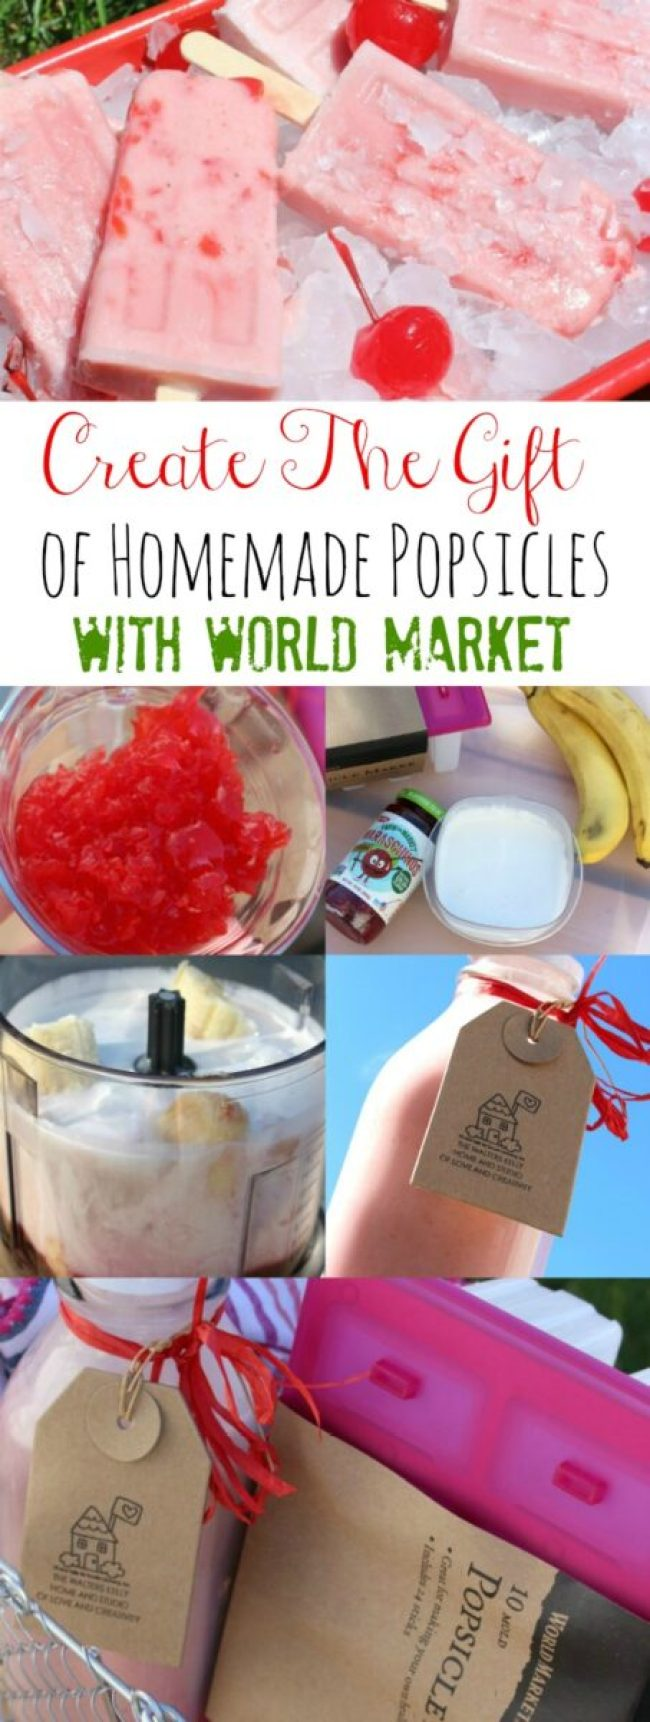 Homemade Popsicle Gift World Market